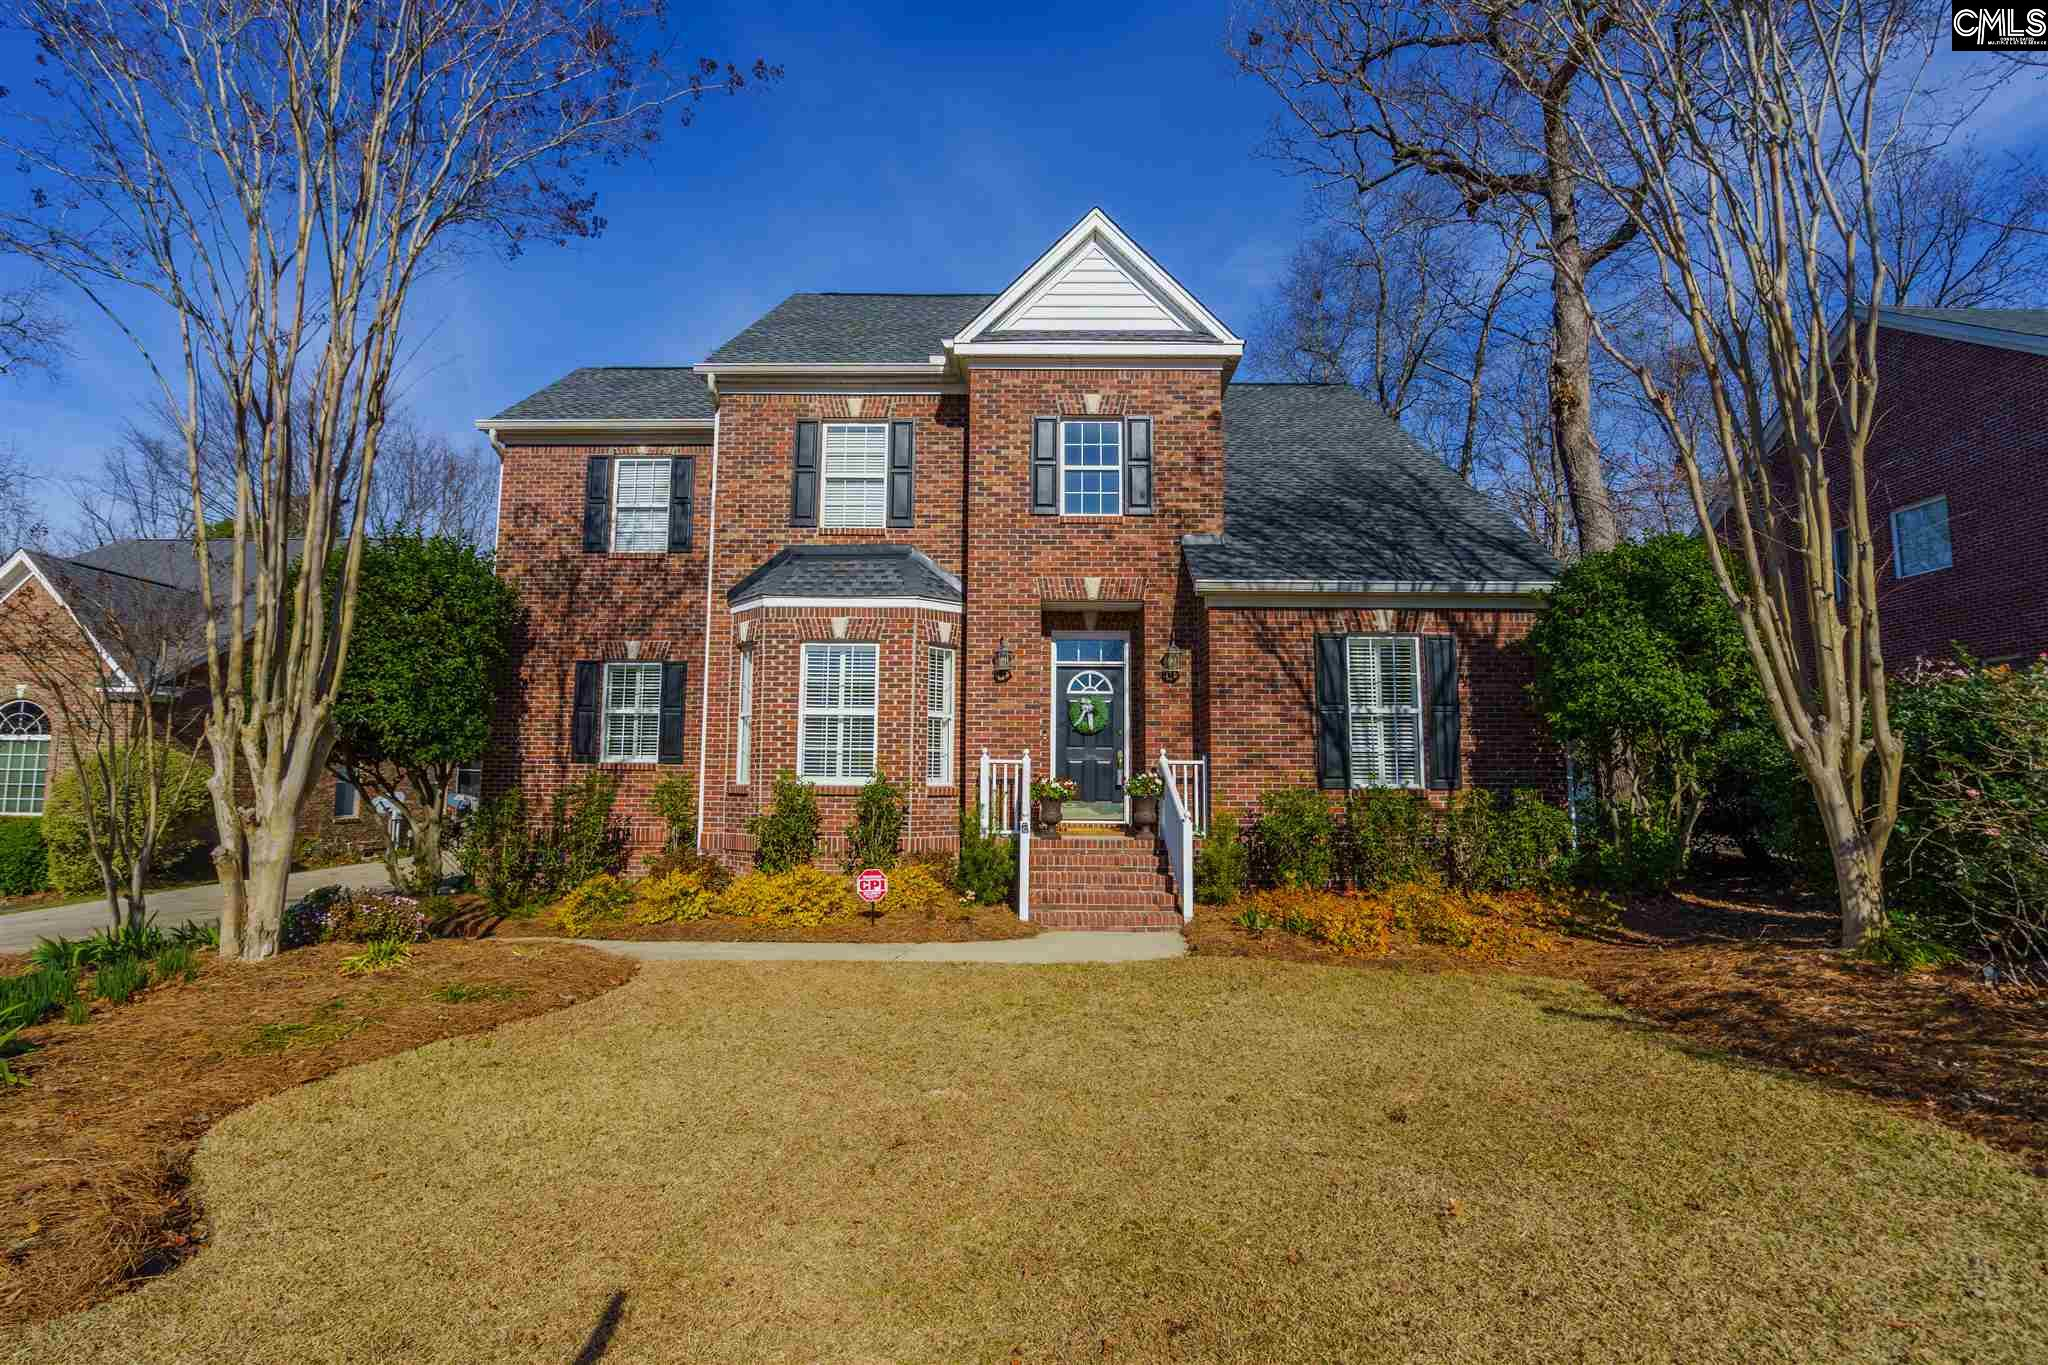 400 Chimney Hill Columbia, SC 29209-5401